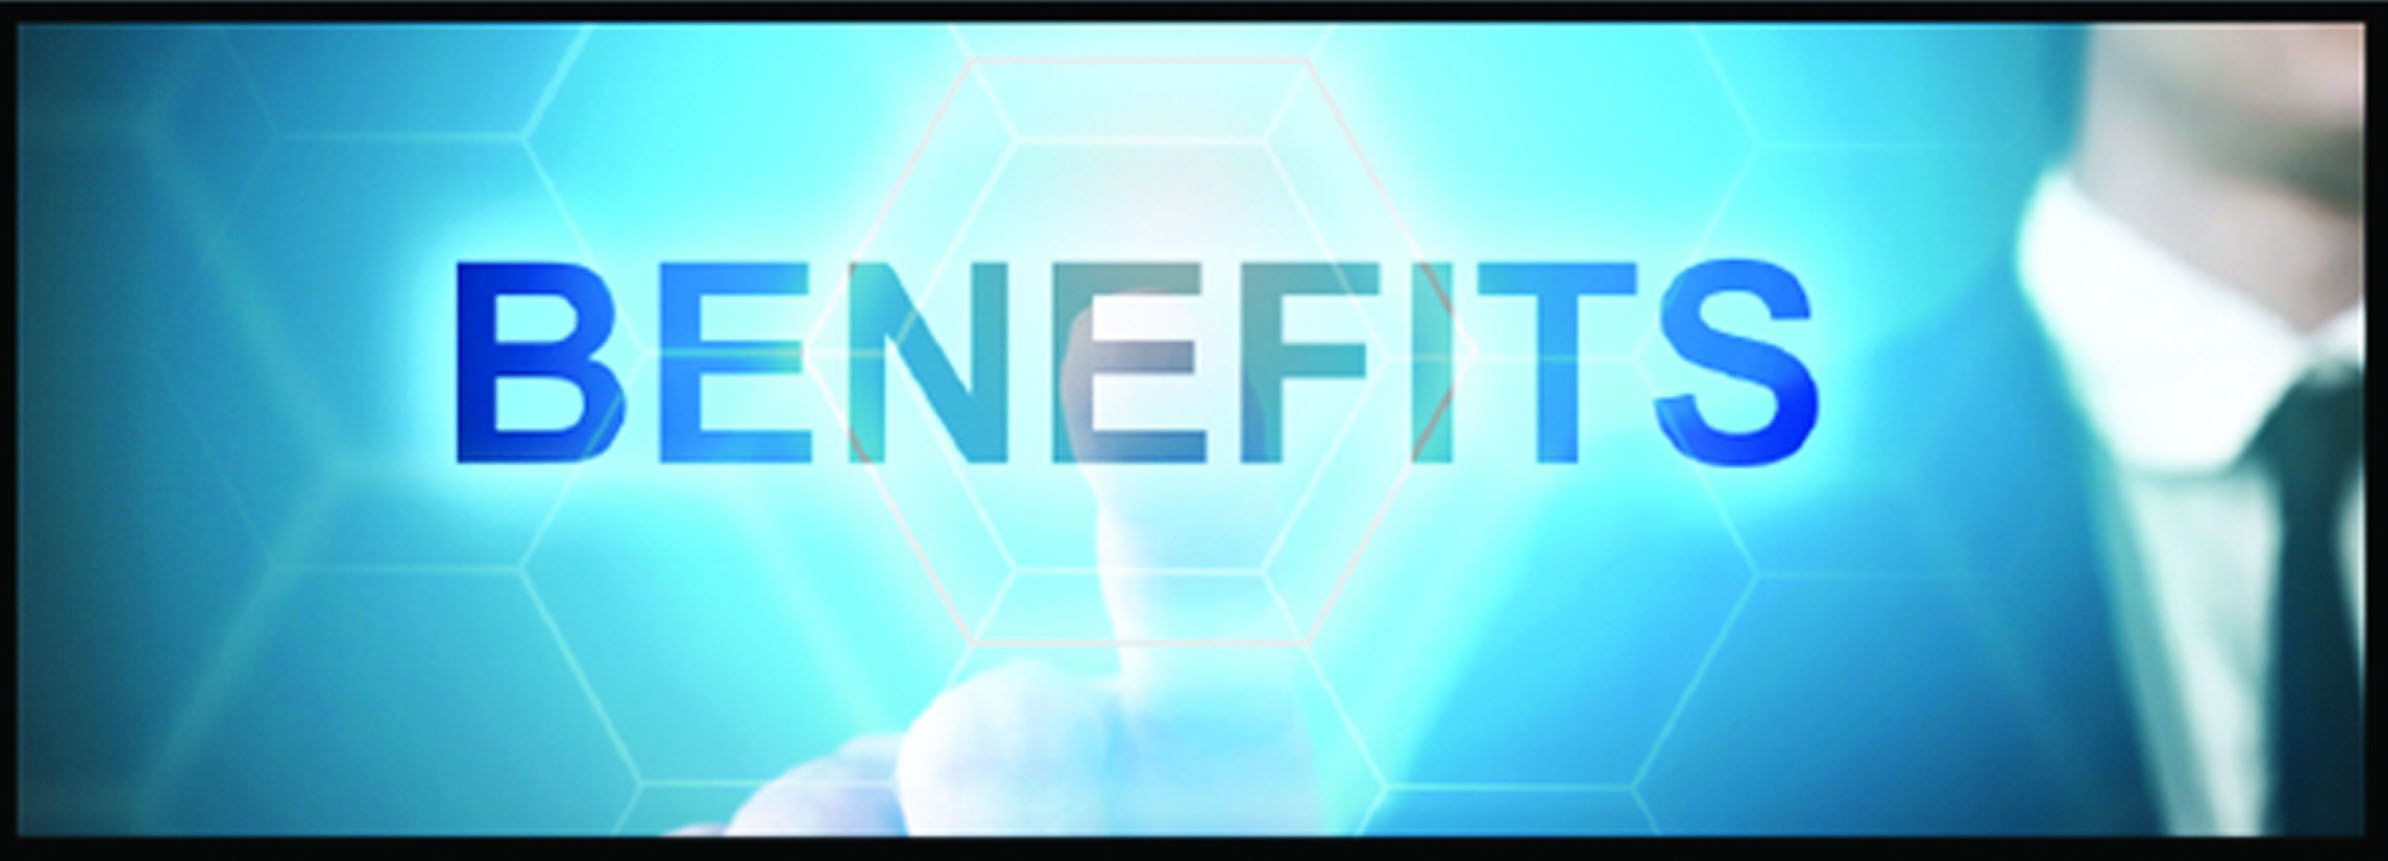 Benefits Page Main Banner